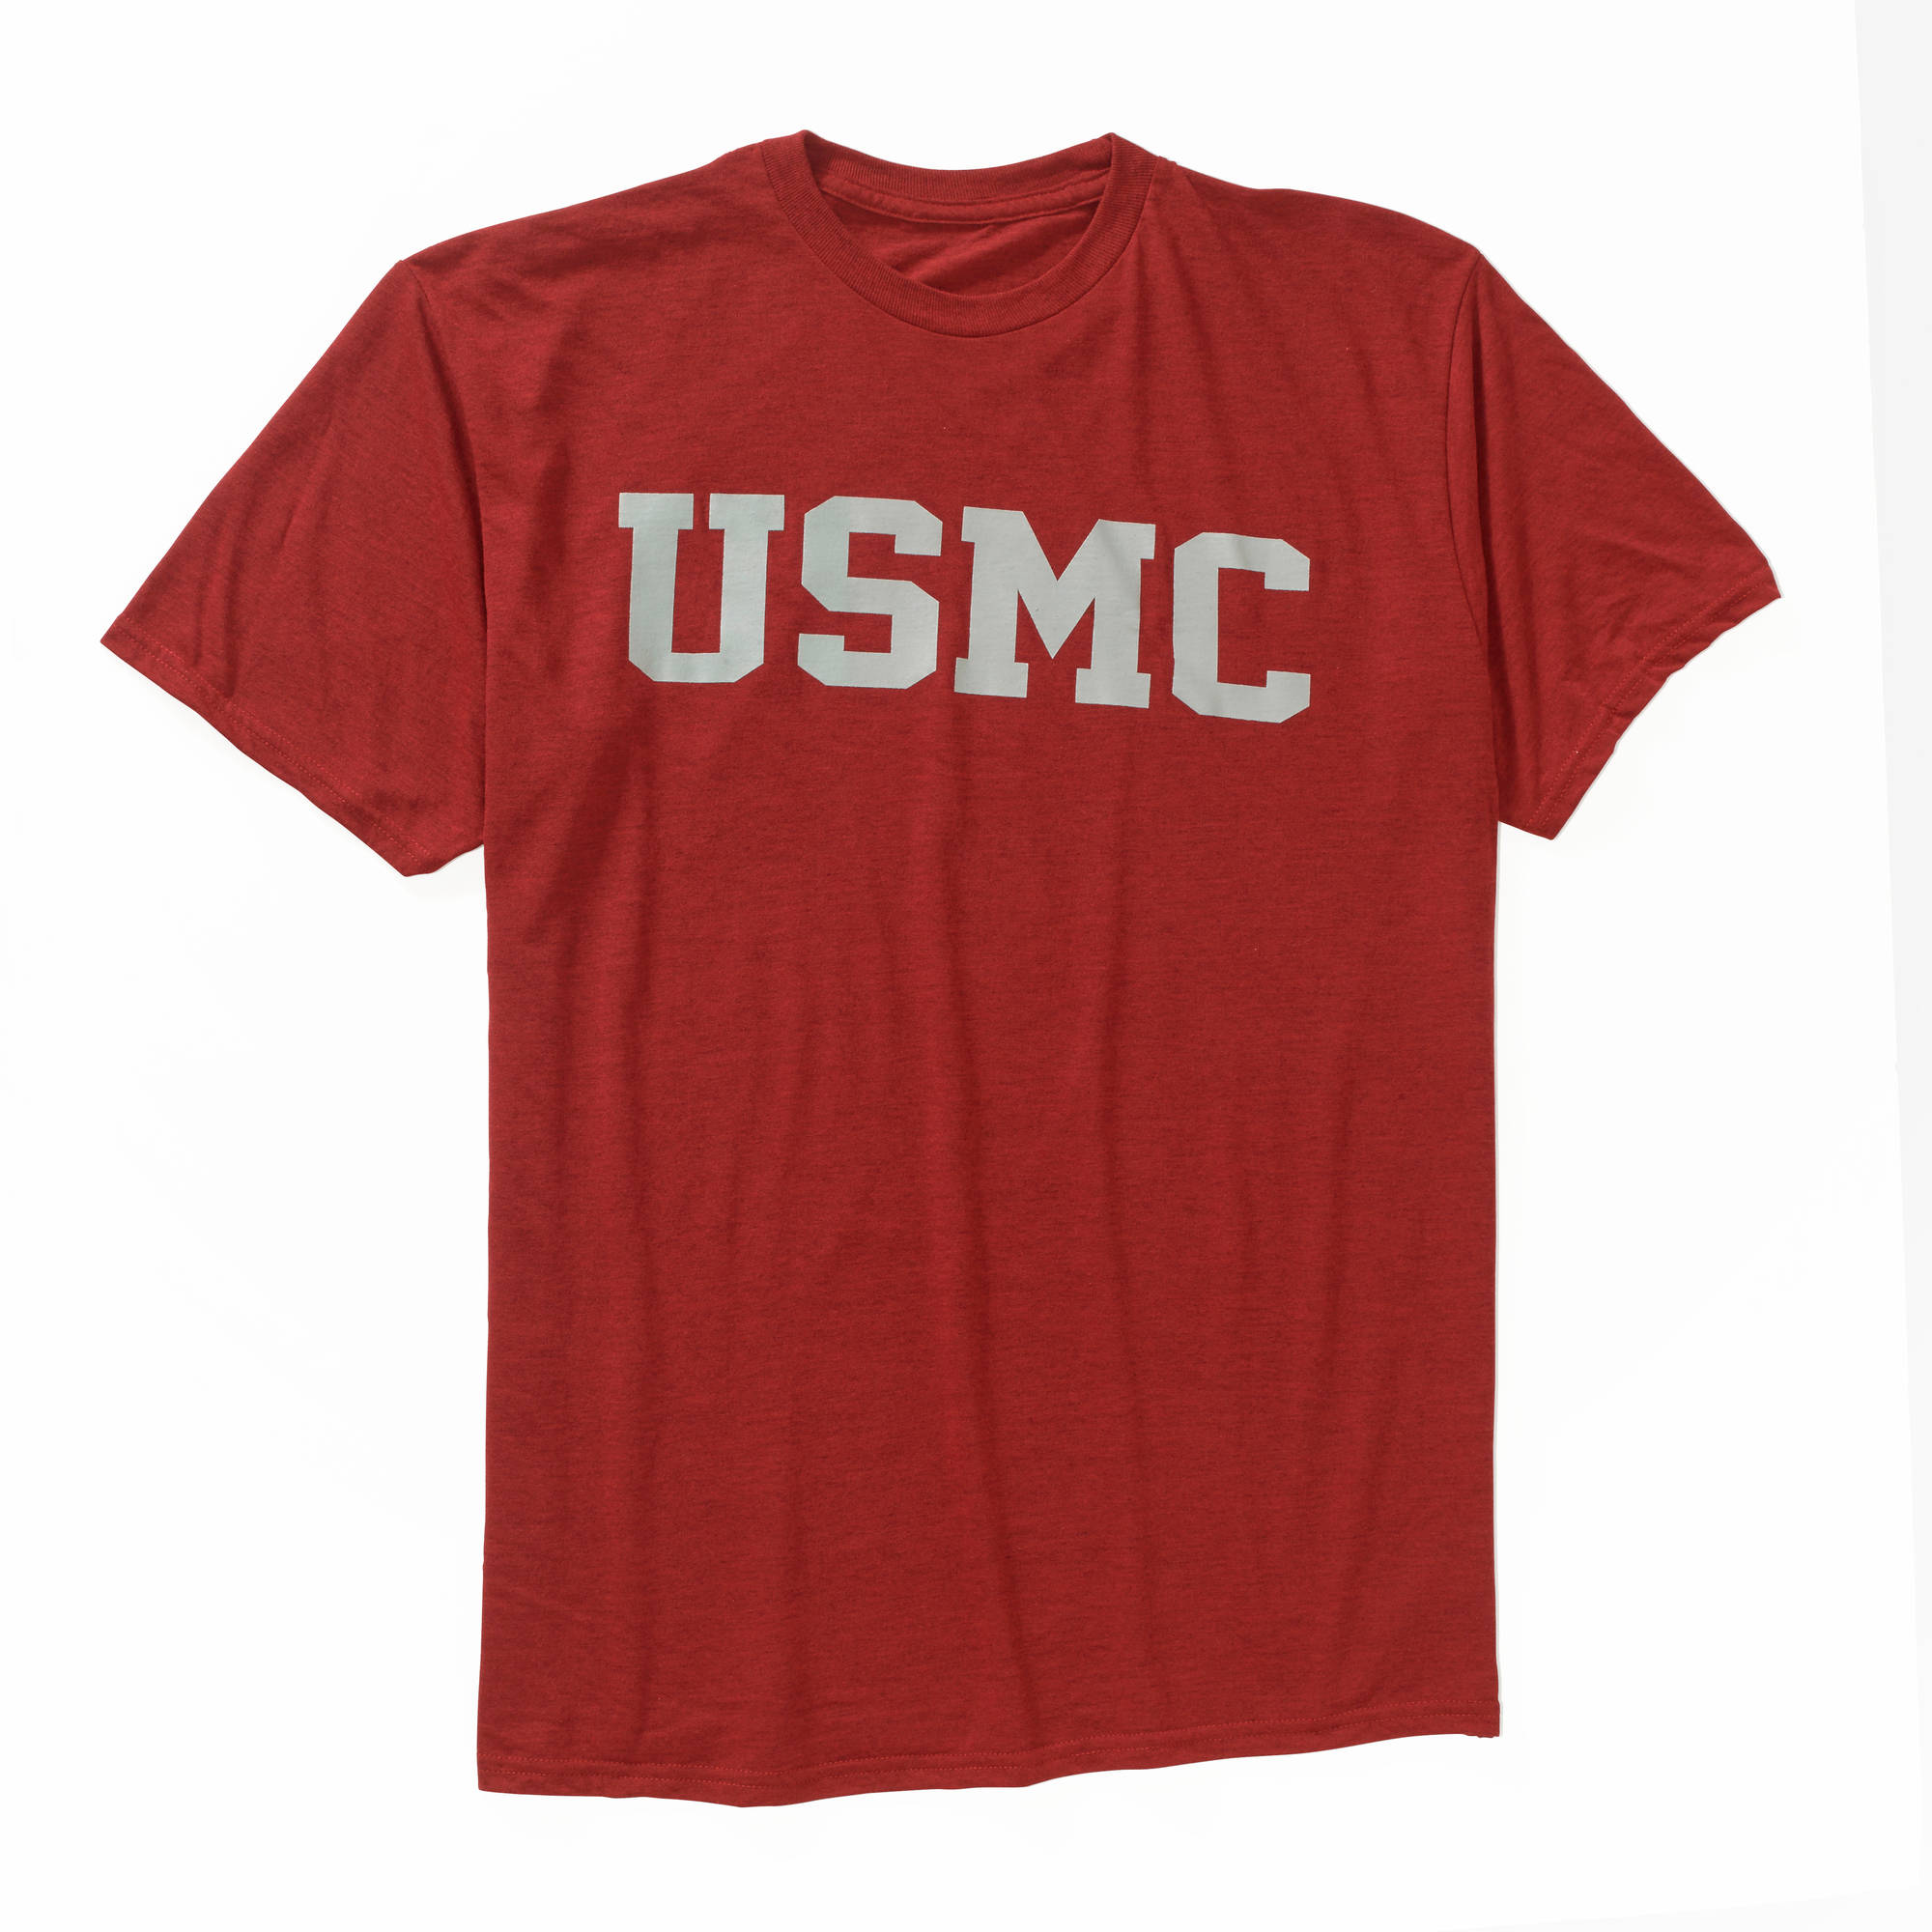 Men's Military Officially Licensed USMC Workout Tee, 2XL